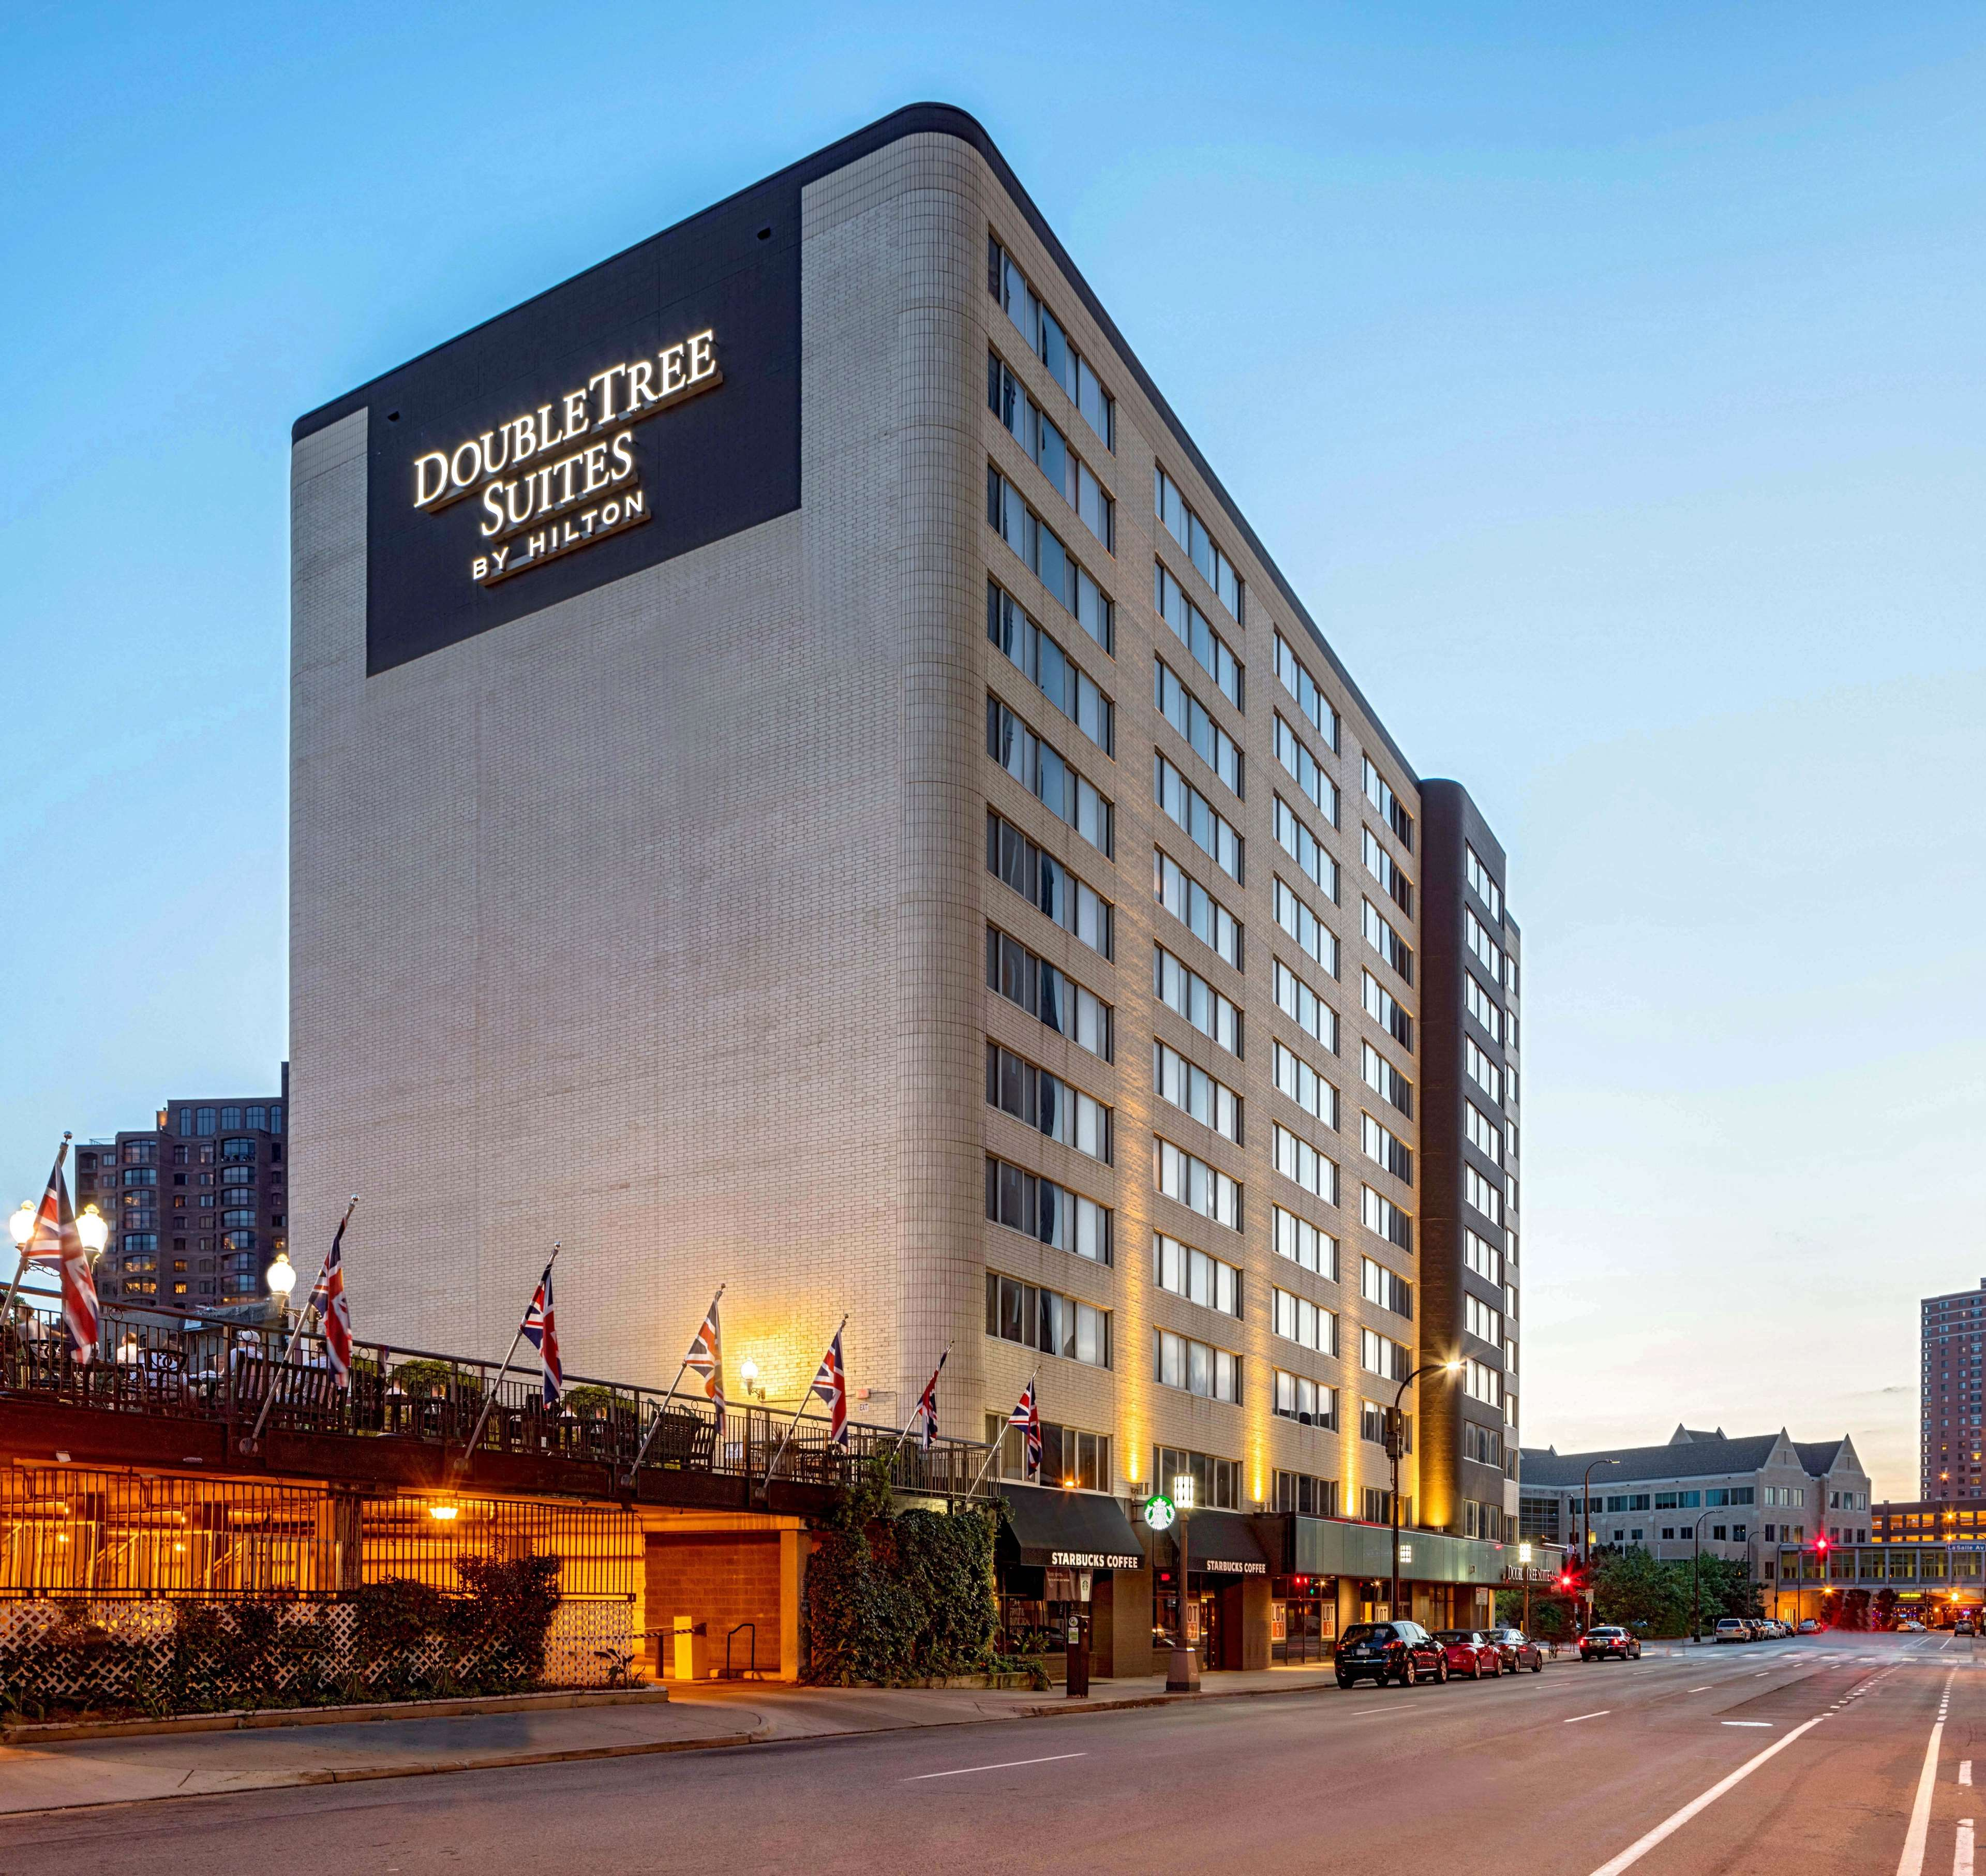 DoubleTree Suites by Hilton Hotel Minneapolis image 1